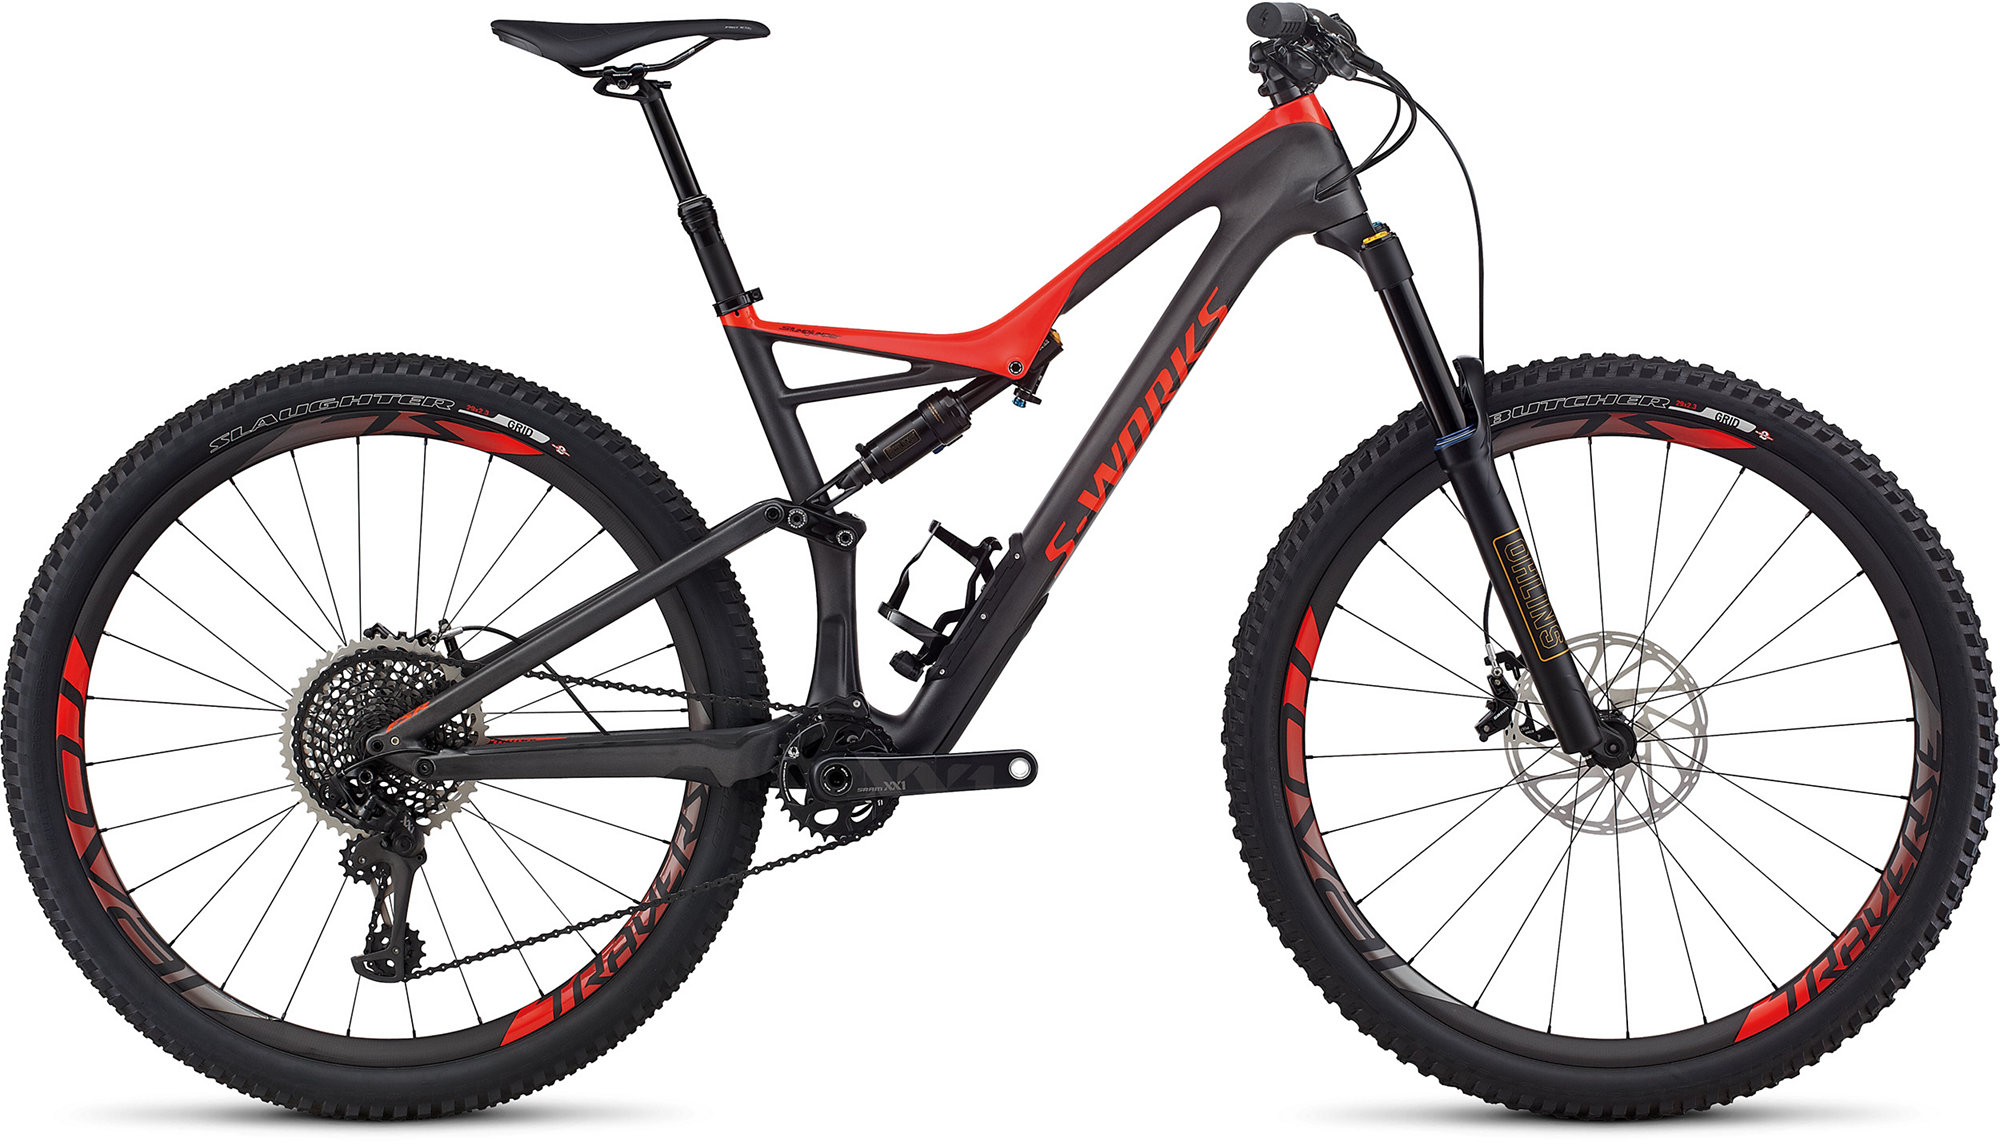 216ebda8df1 2017 Specialized S-Works Stumpjumper FSR 29 - Specialized Concept Store